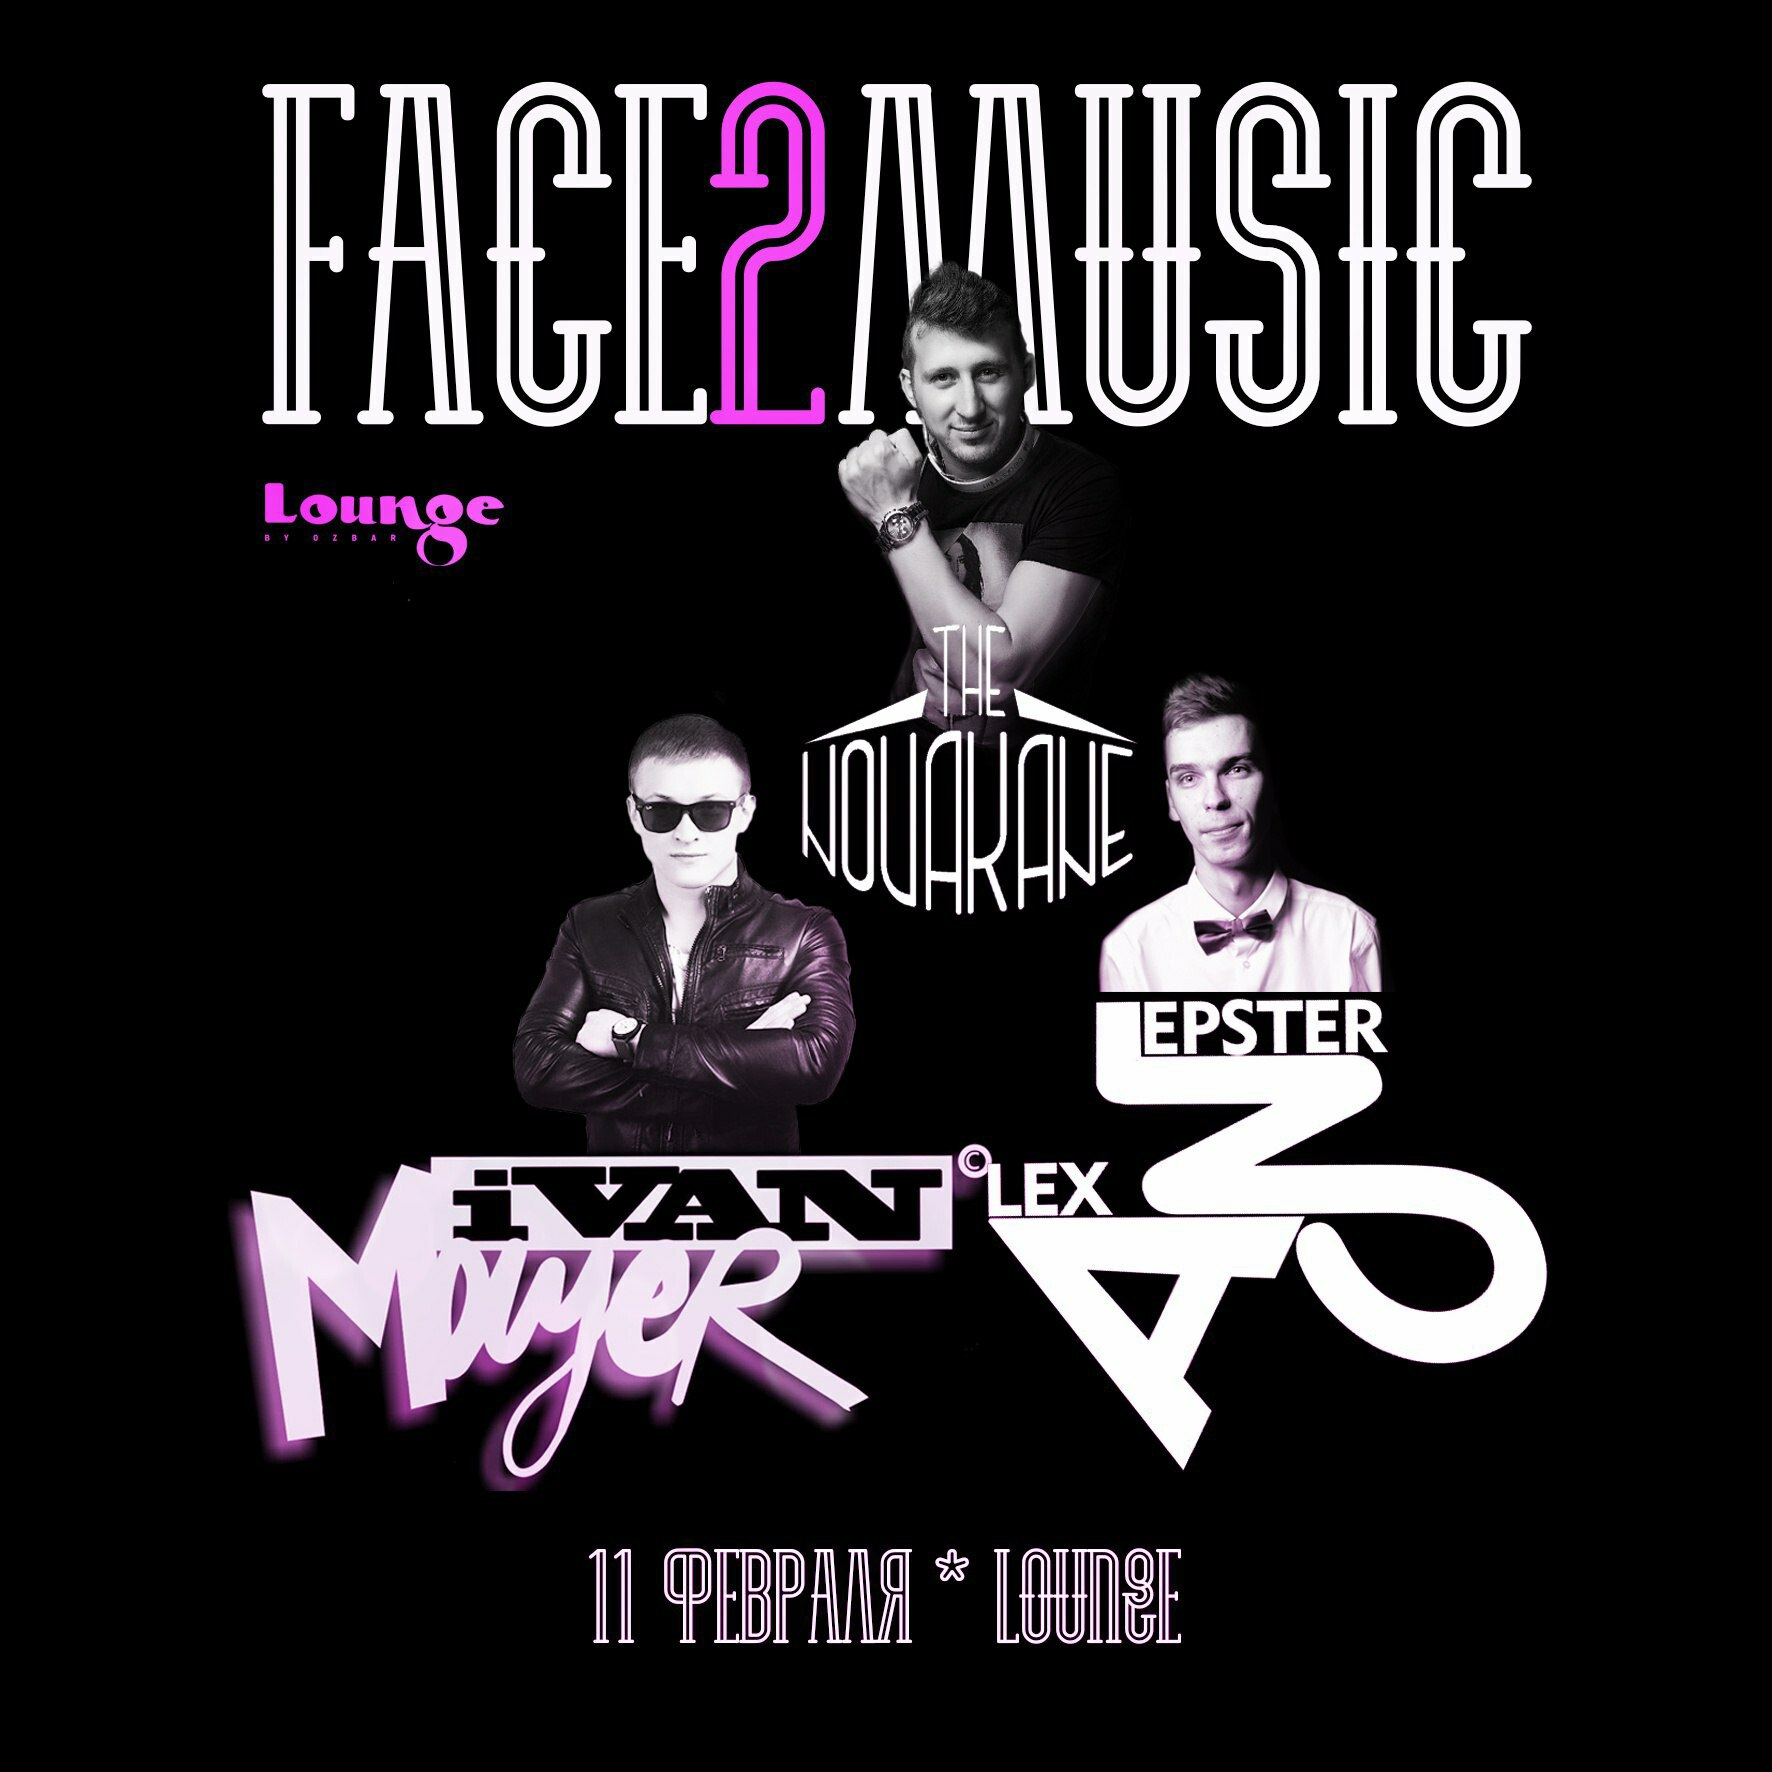 Face2Music